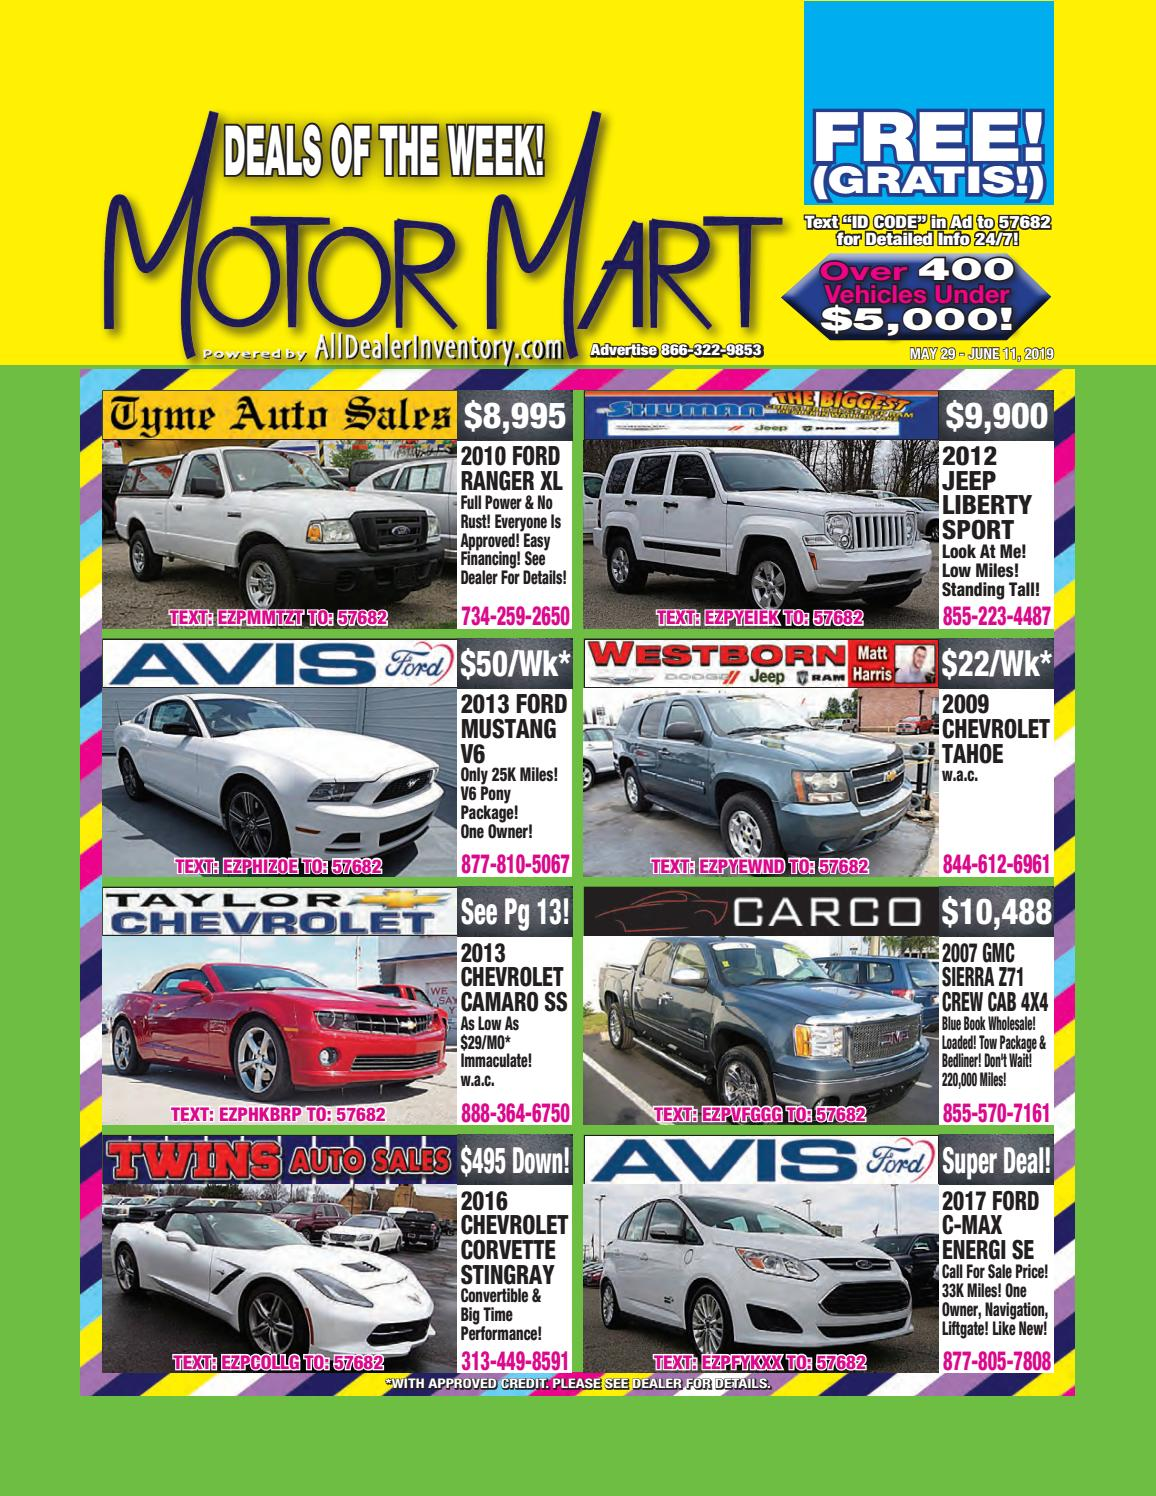 Motor Mart's May 29th Edition! Shop Super Metro Detroit Auto